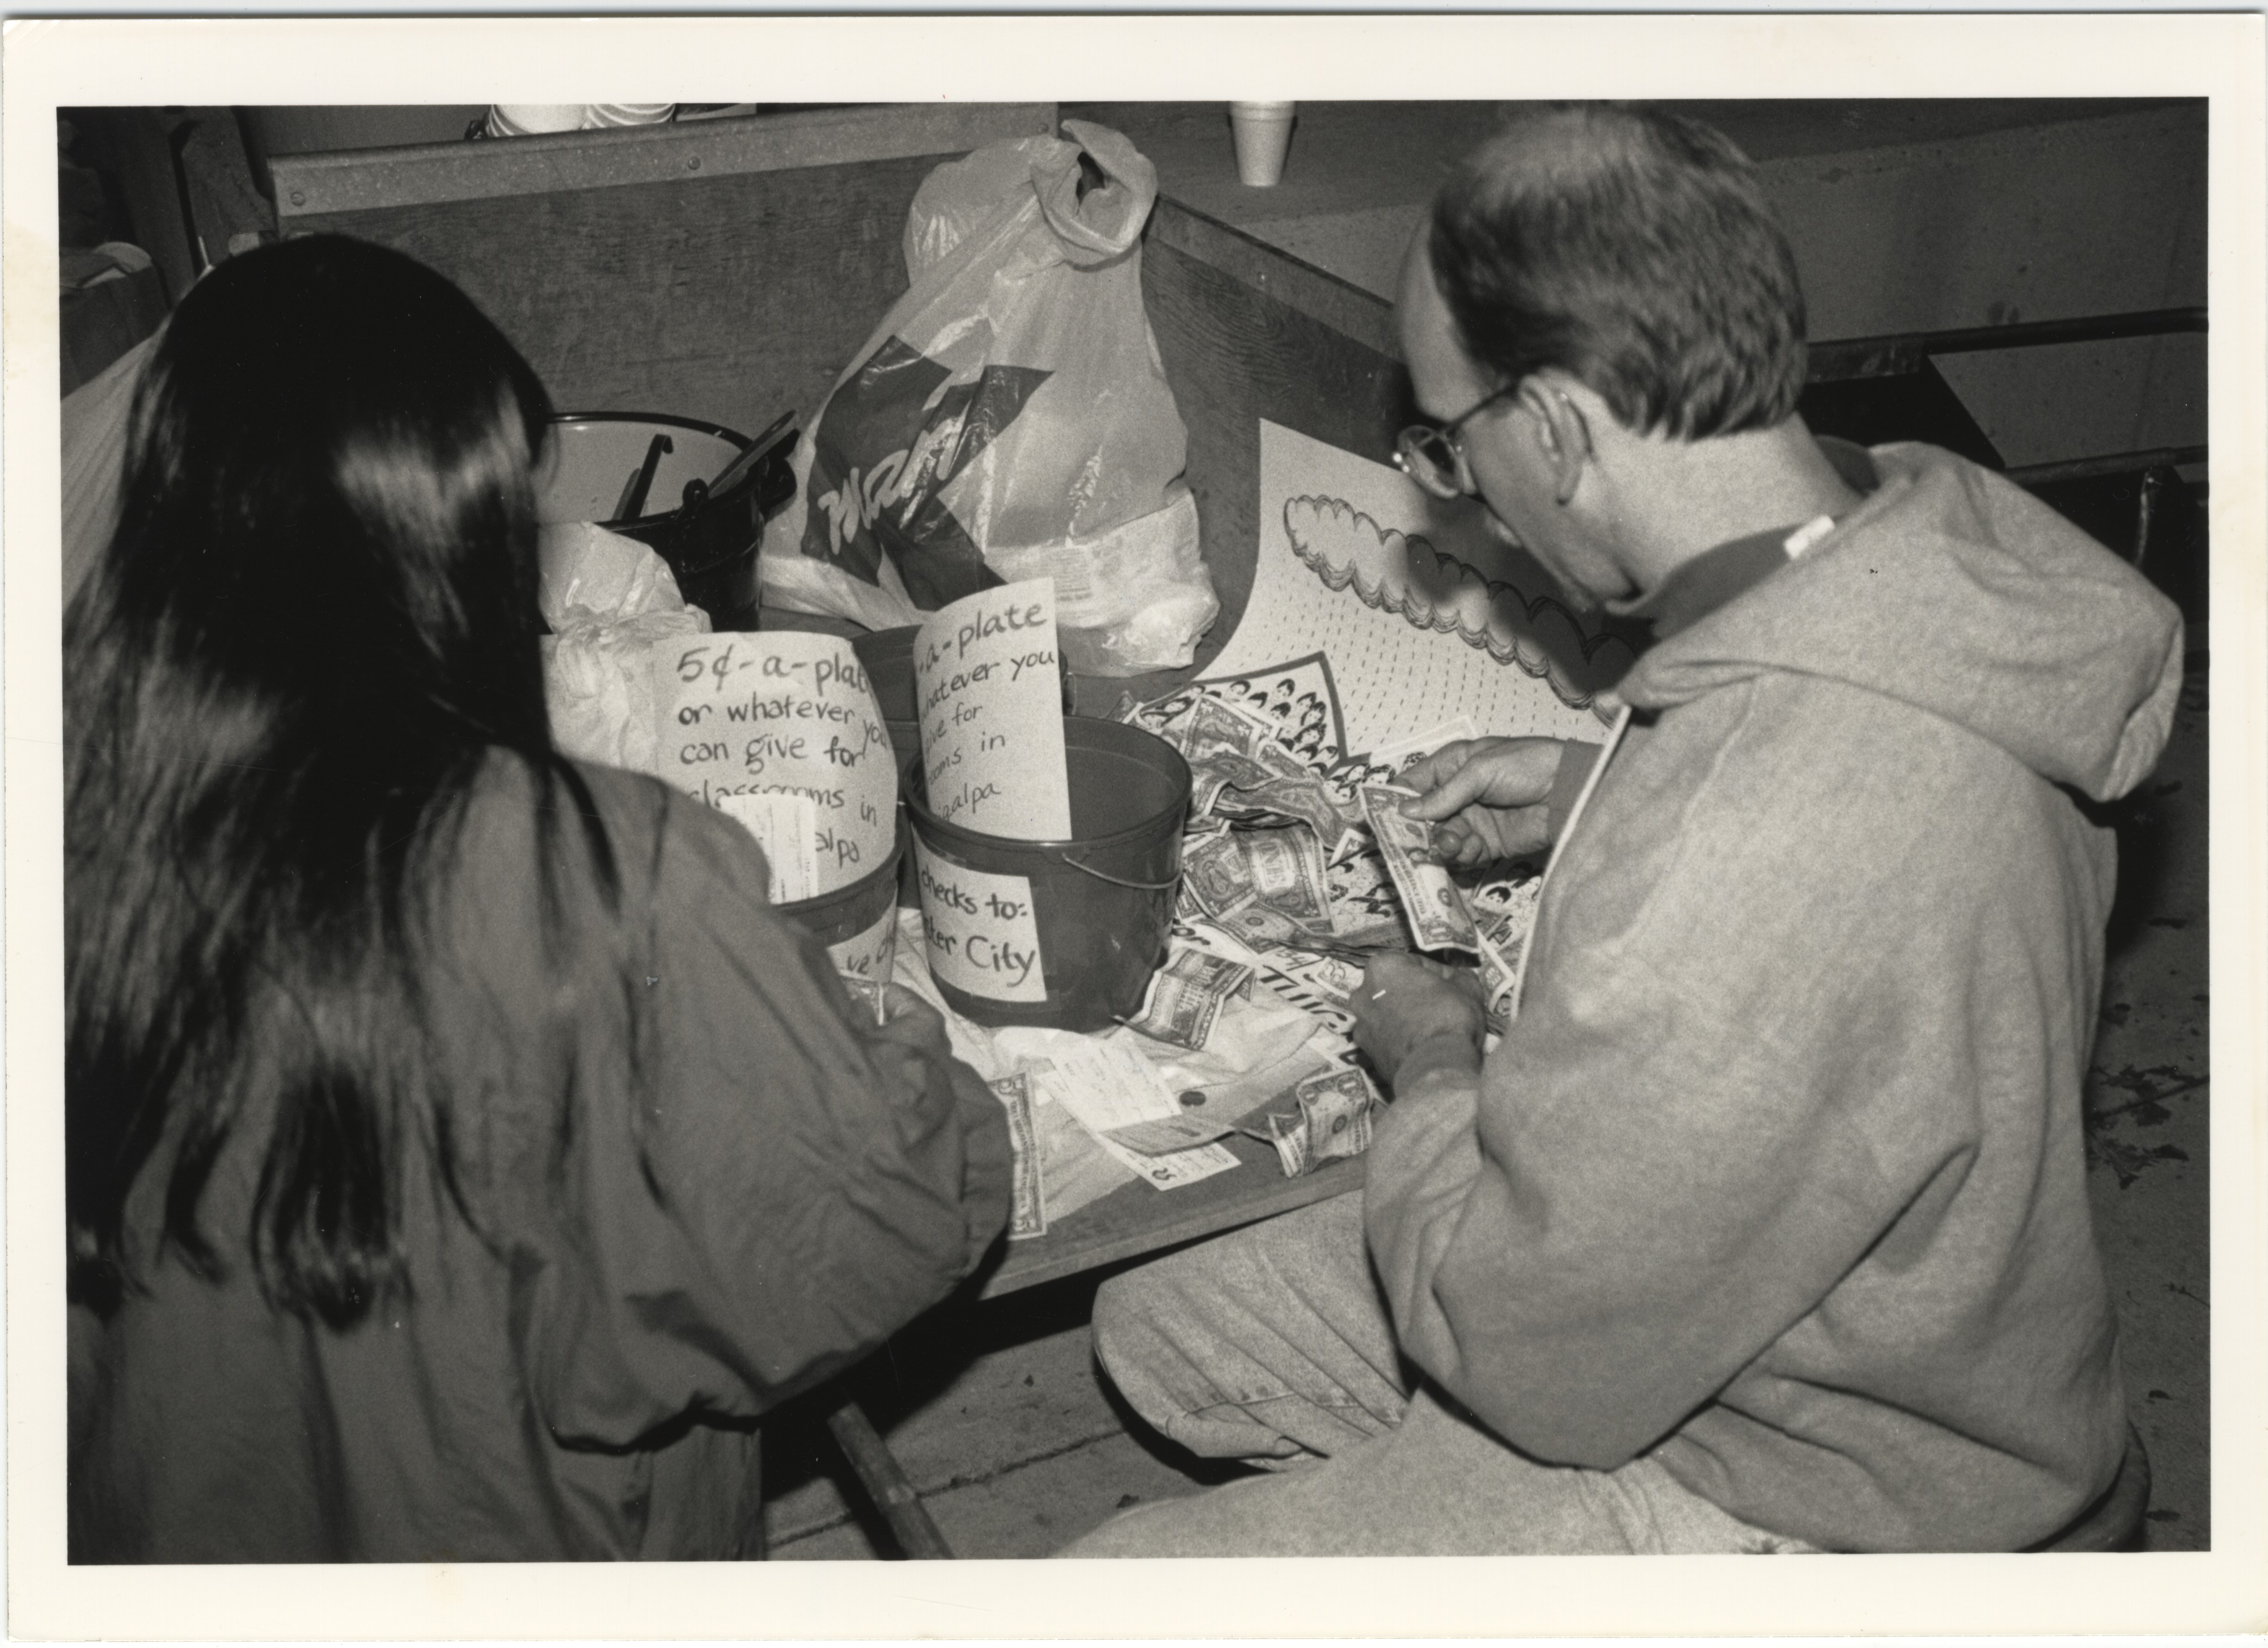 Interfaith Council for Peace and Justice: Counting Funds Raised, 1991 image